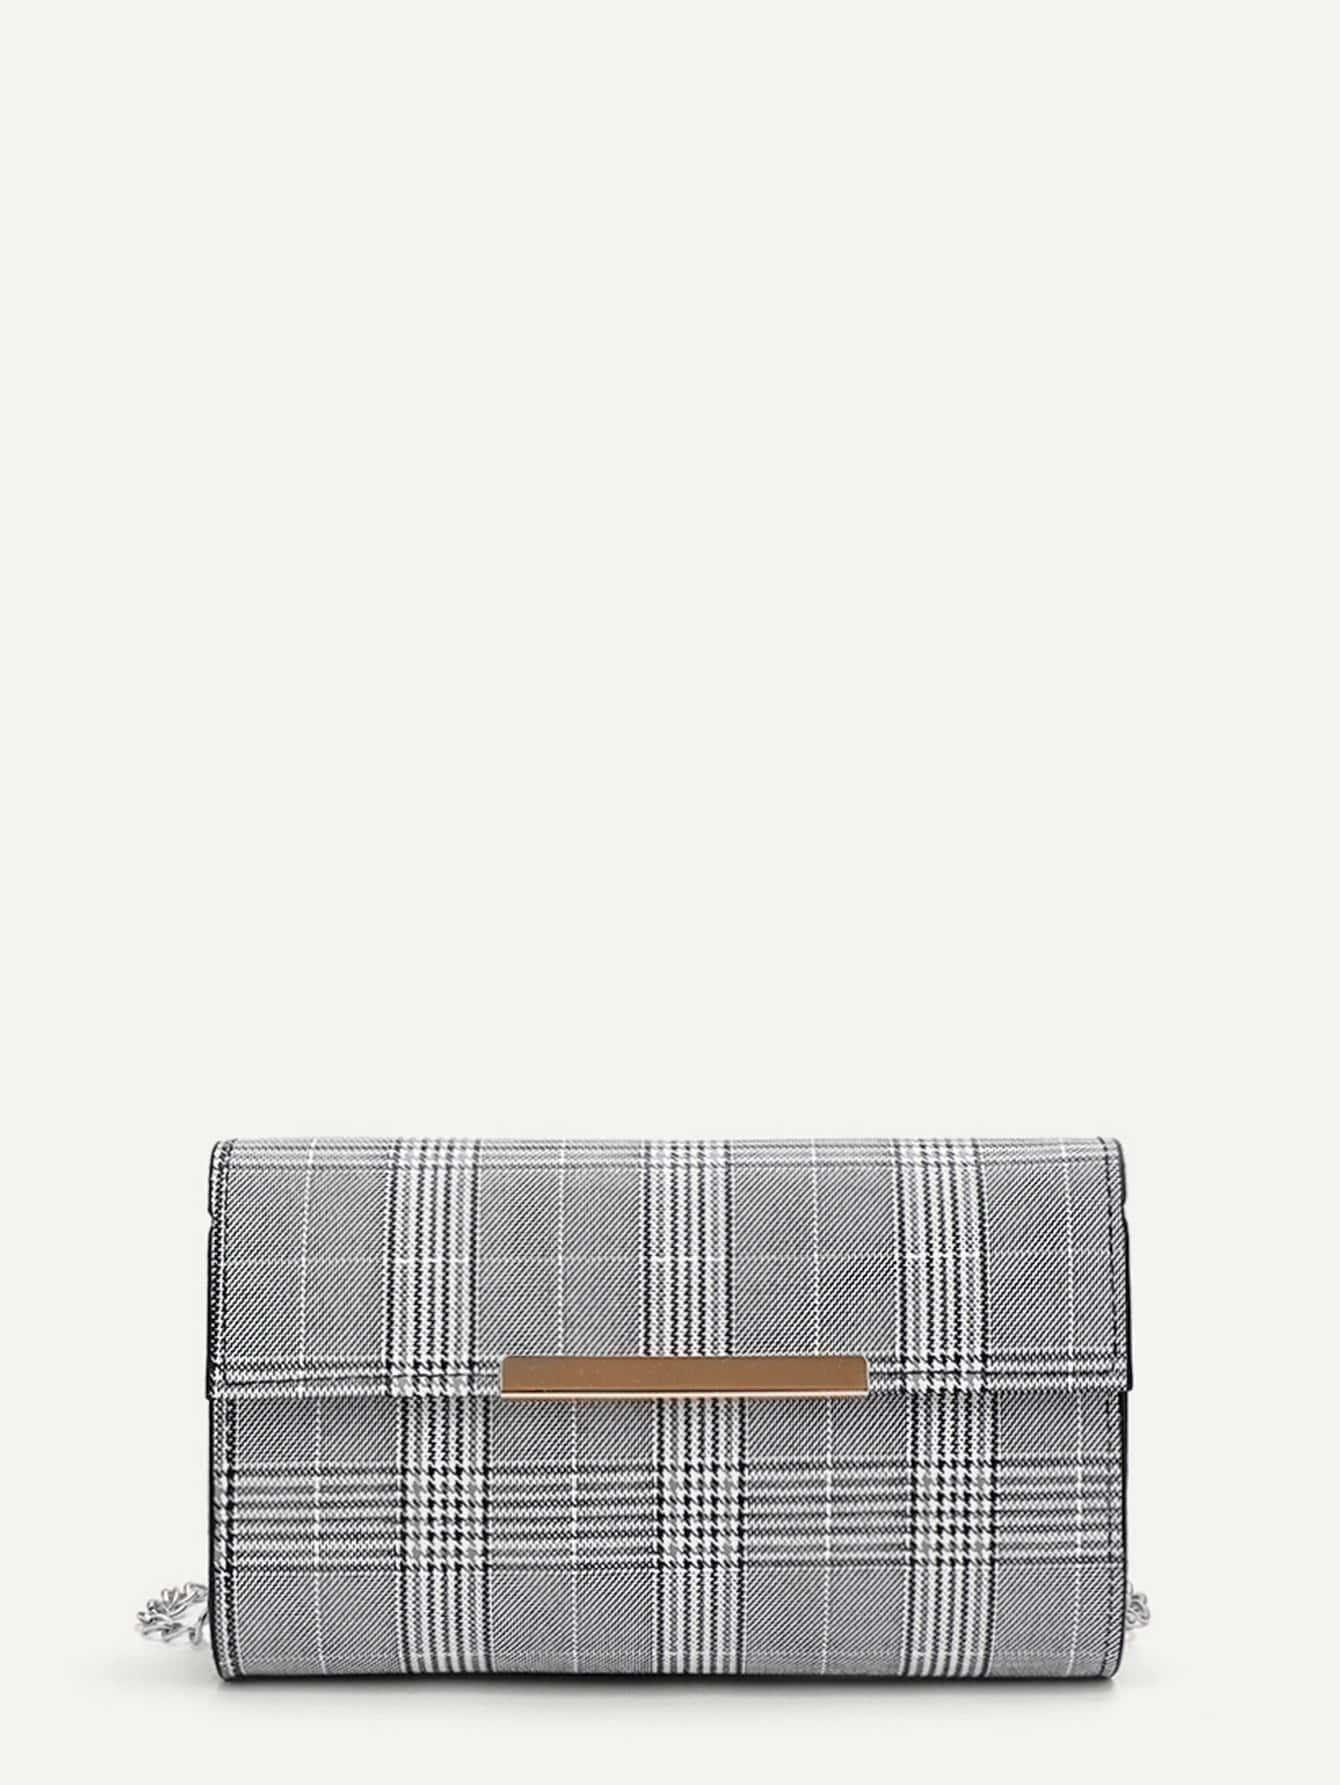 Glen Plaid Shoulder Bag